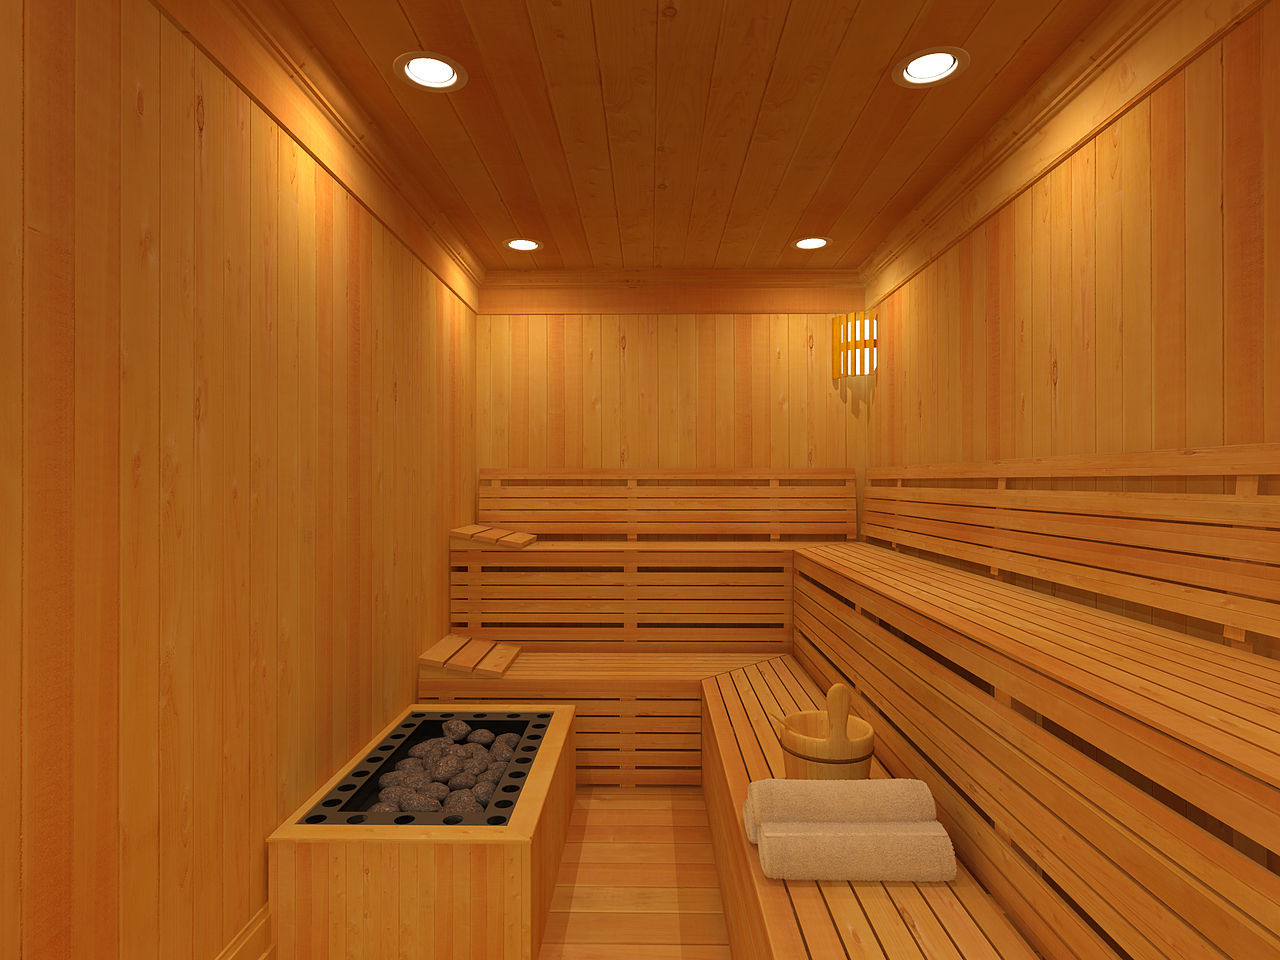 Sauna Enthusiasts Demand Right To Go Naked - The Reykjavik